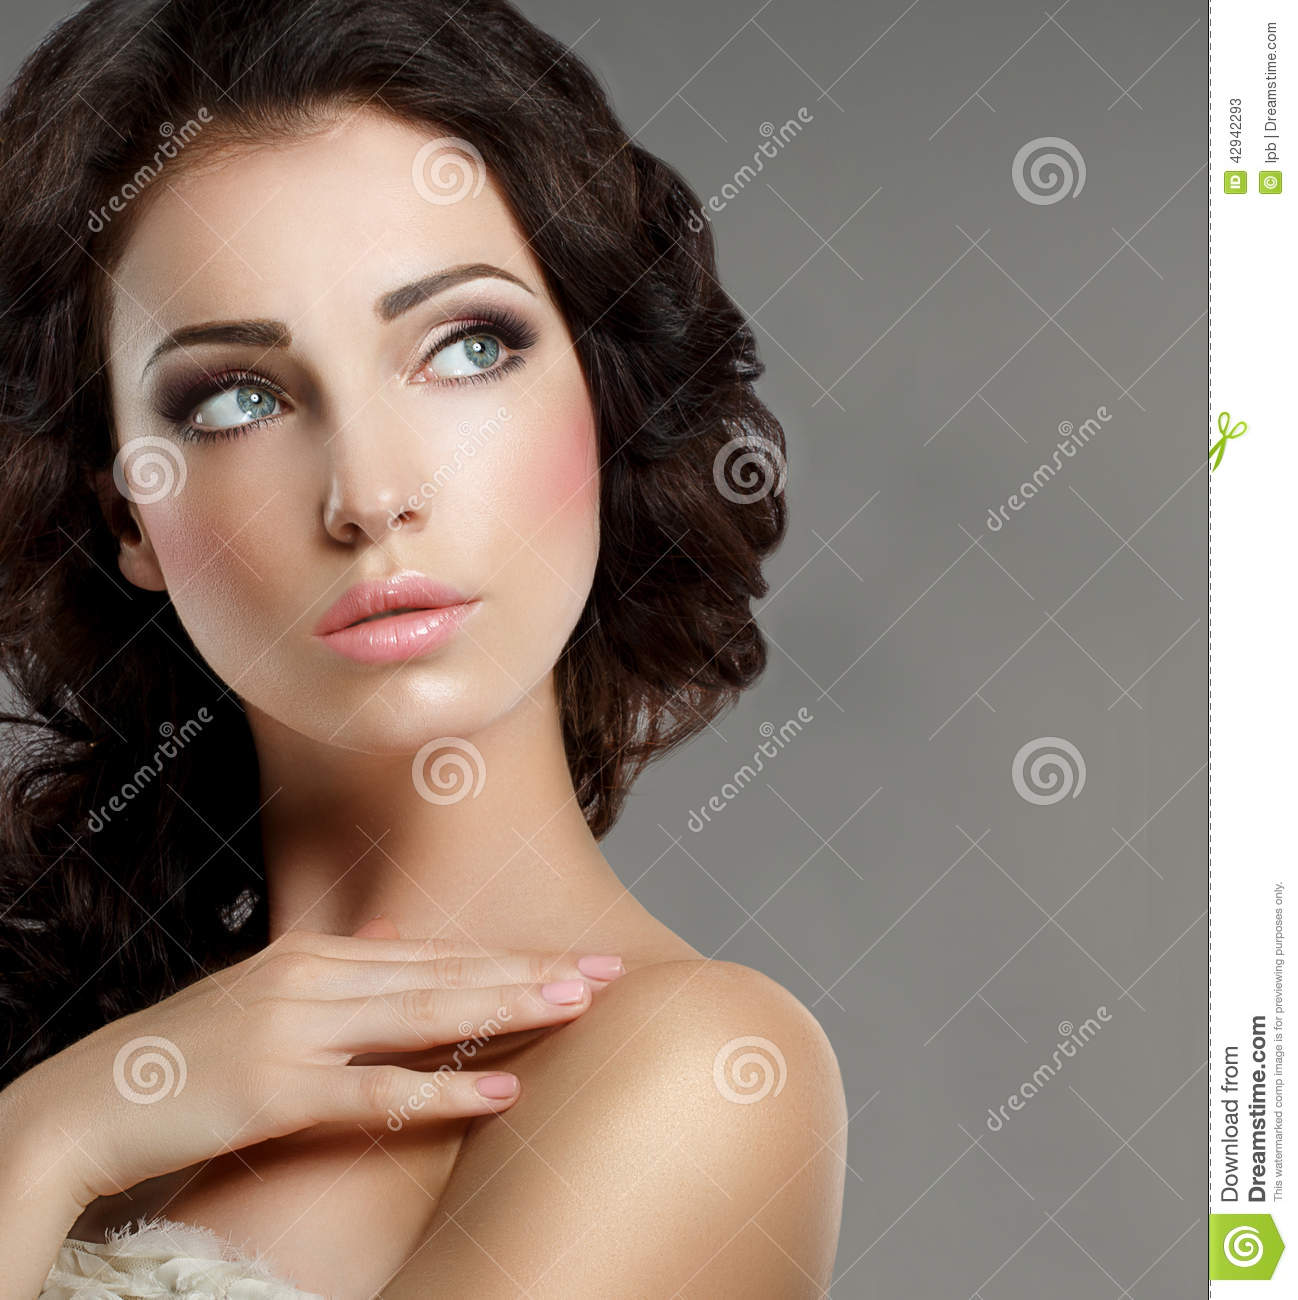 Femininity. Groomed Woman's Face With Natural Makeup. Pure ...